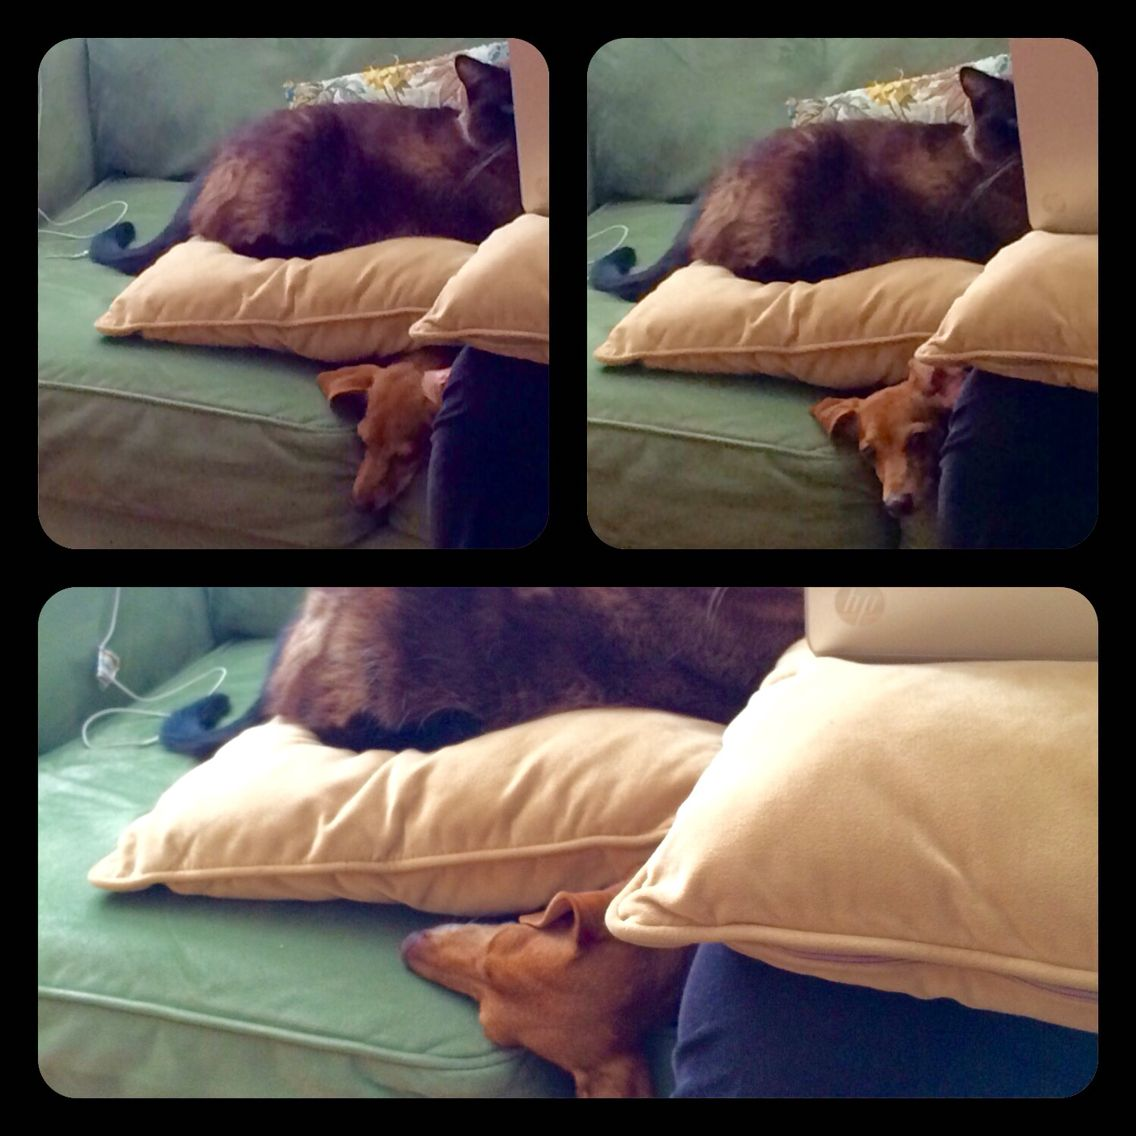 Our minidoxie cuddled up under a pillow, under our